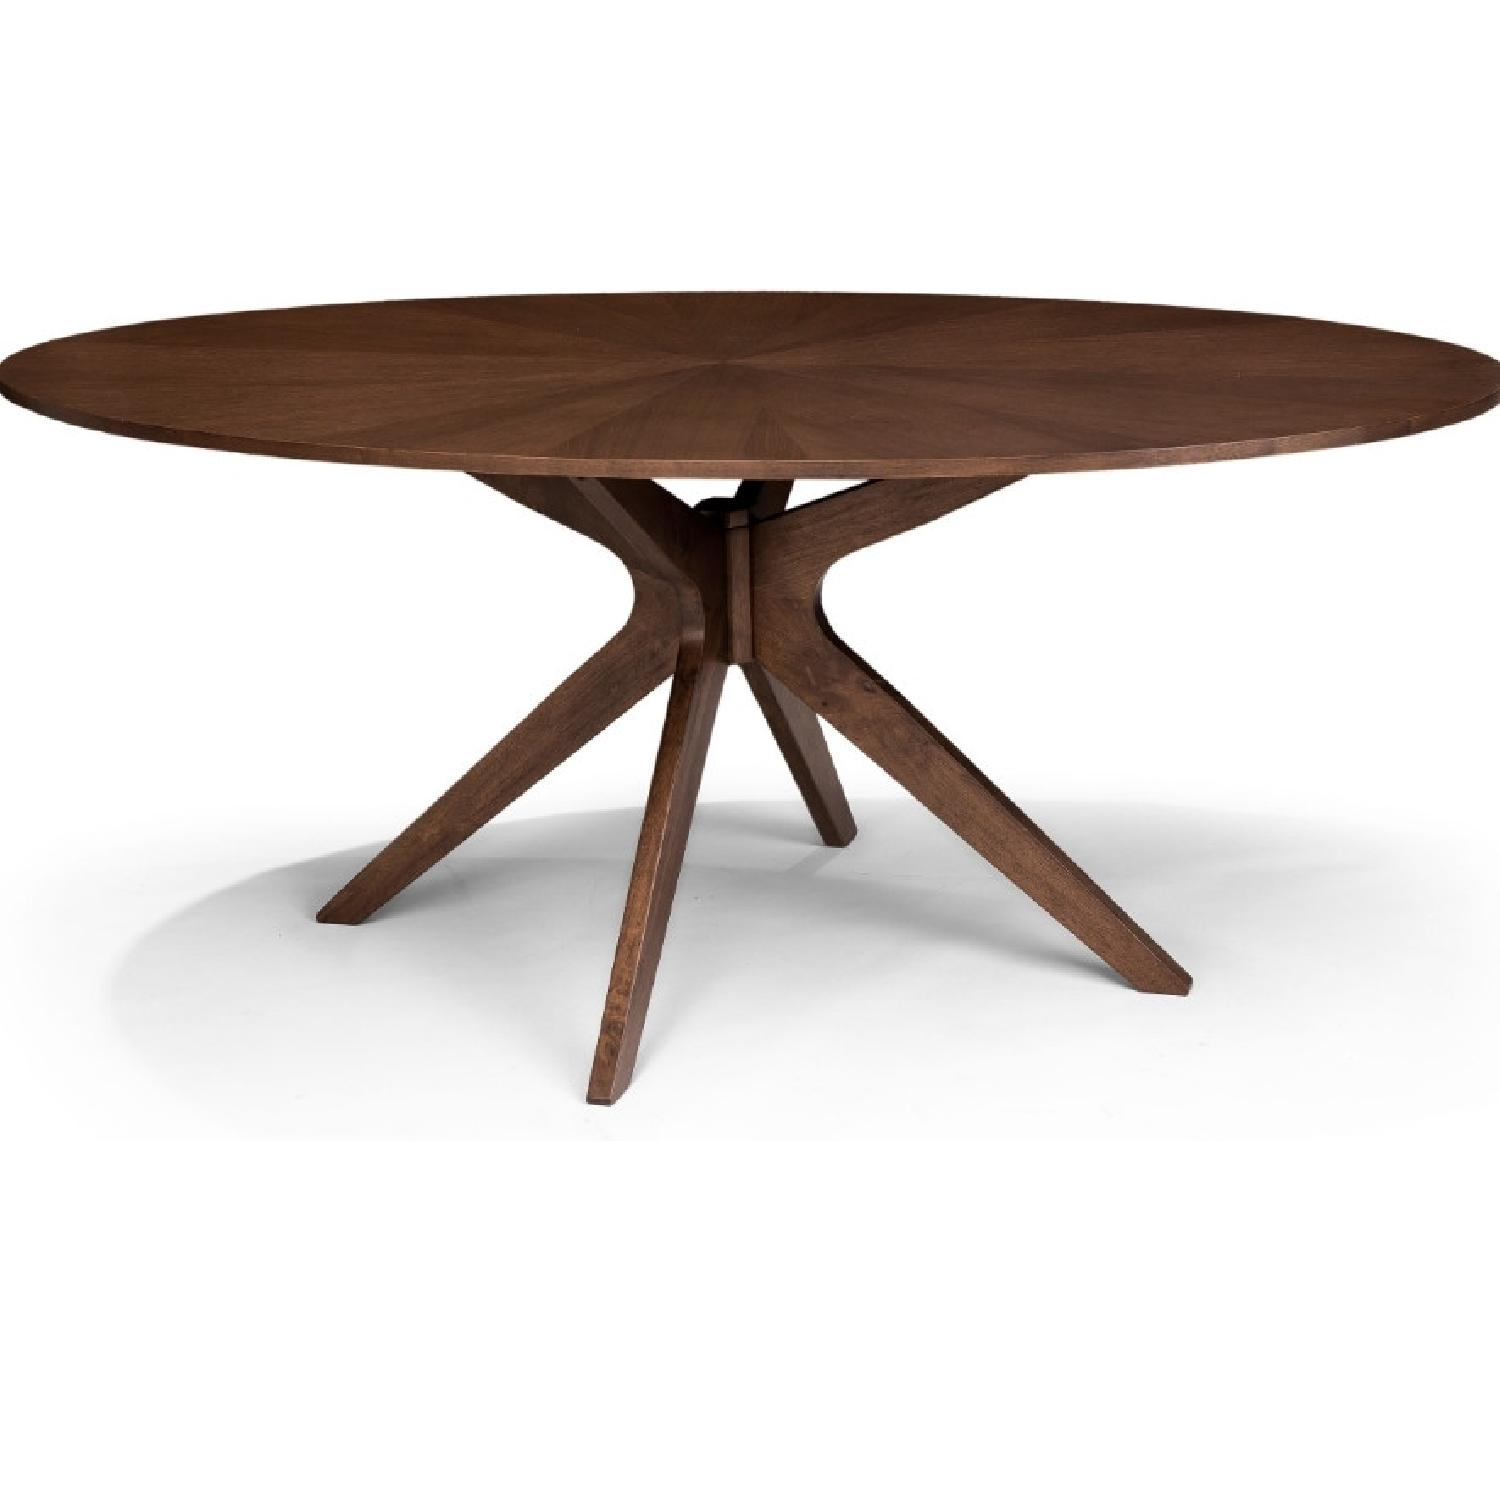 Article Conan Oval Dining Table - image-8